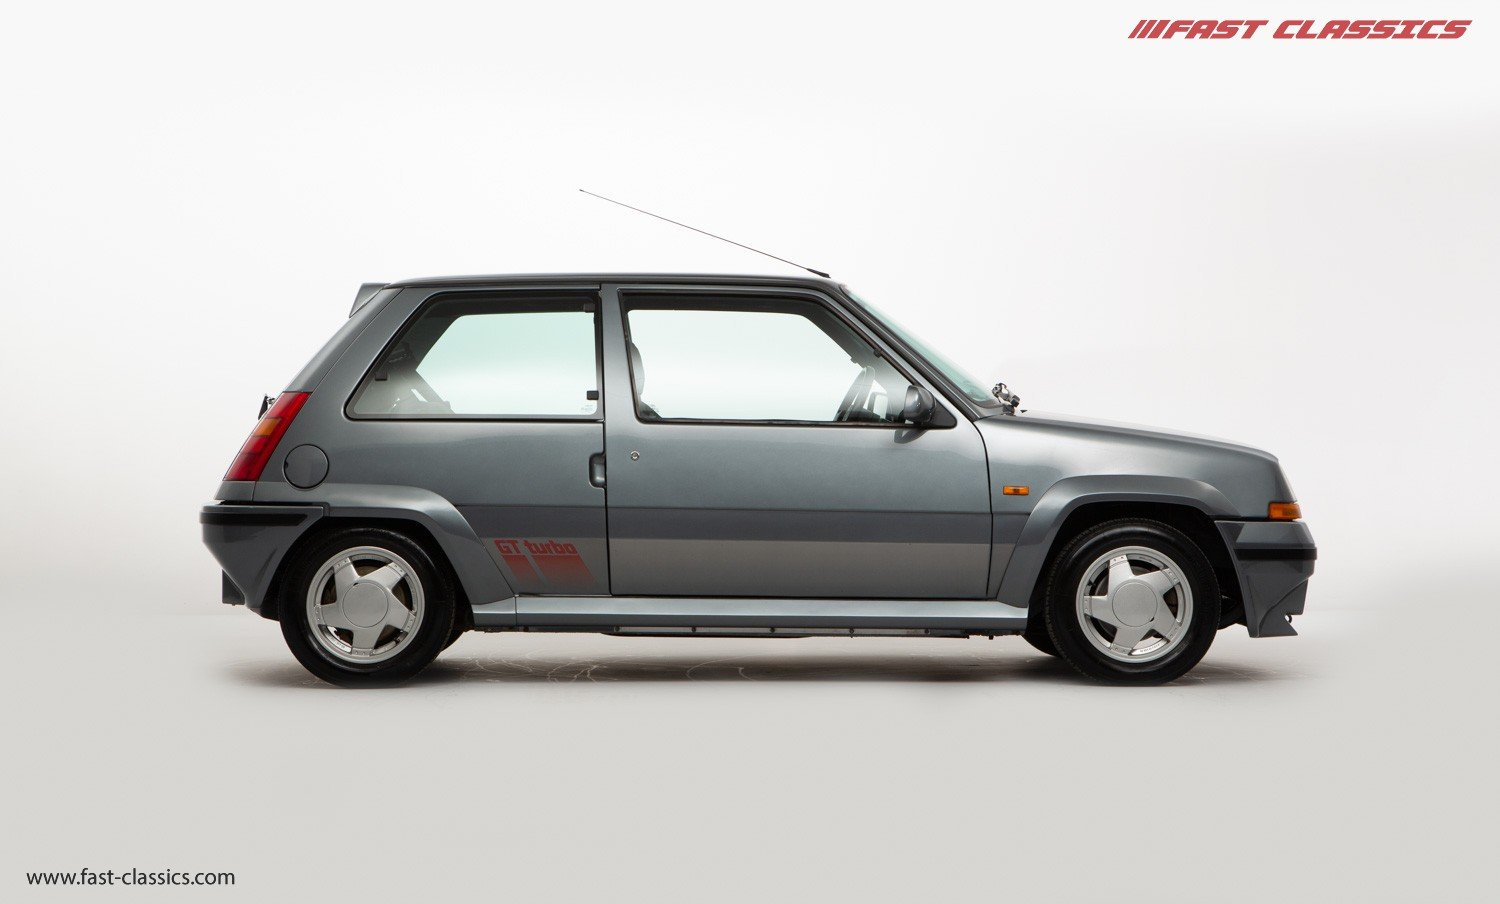 1991 RENAULT R5 GT TURBO // UK RHD // 50K MILES // LATE PRODUCTIO For Sale (picture 1 of 21)